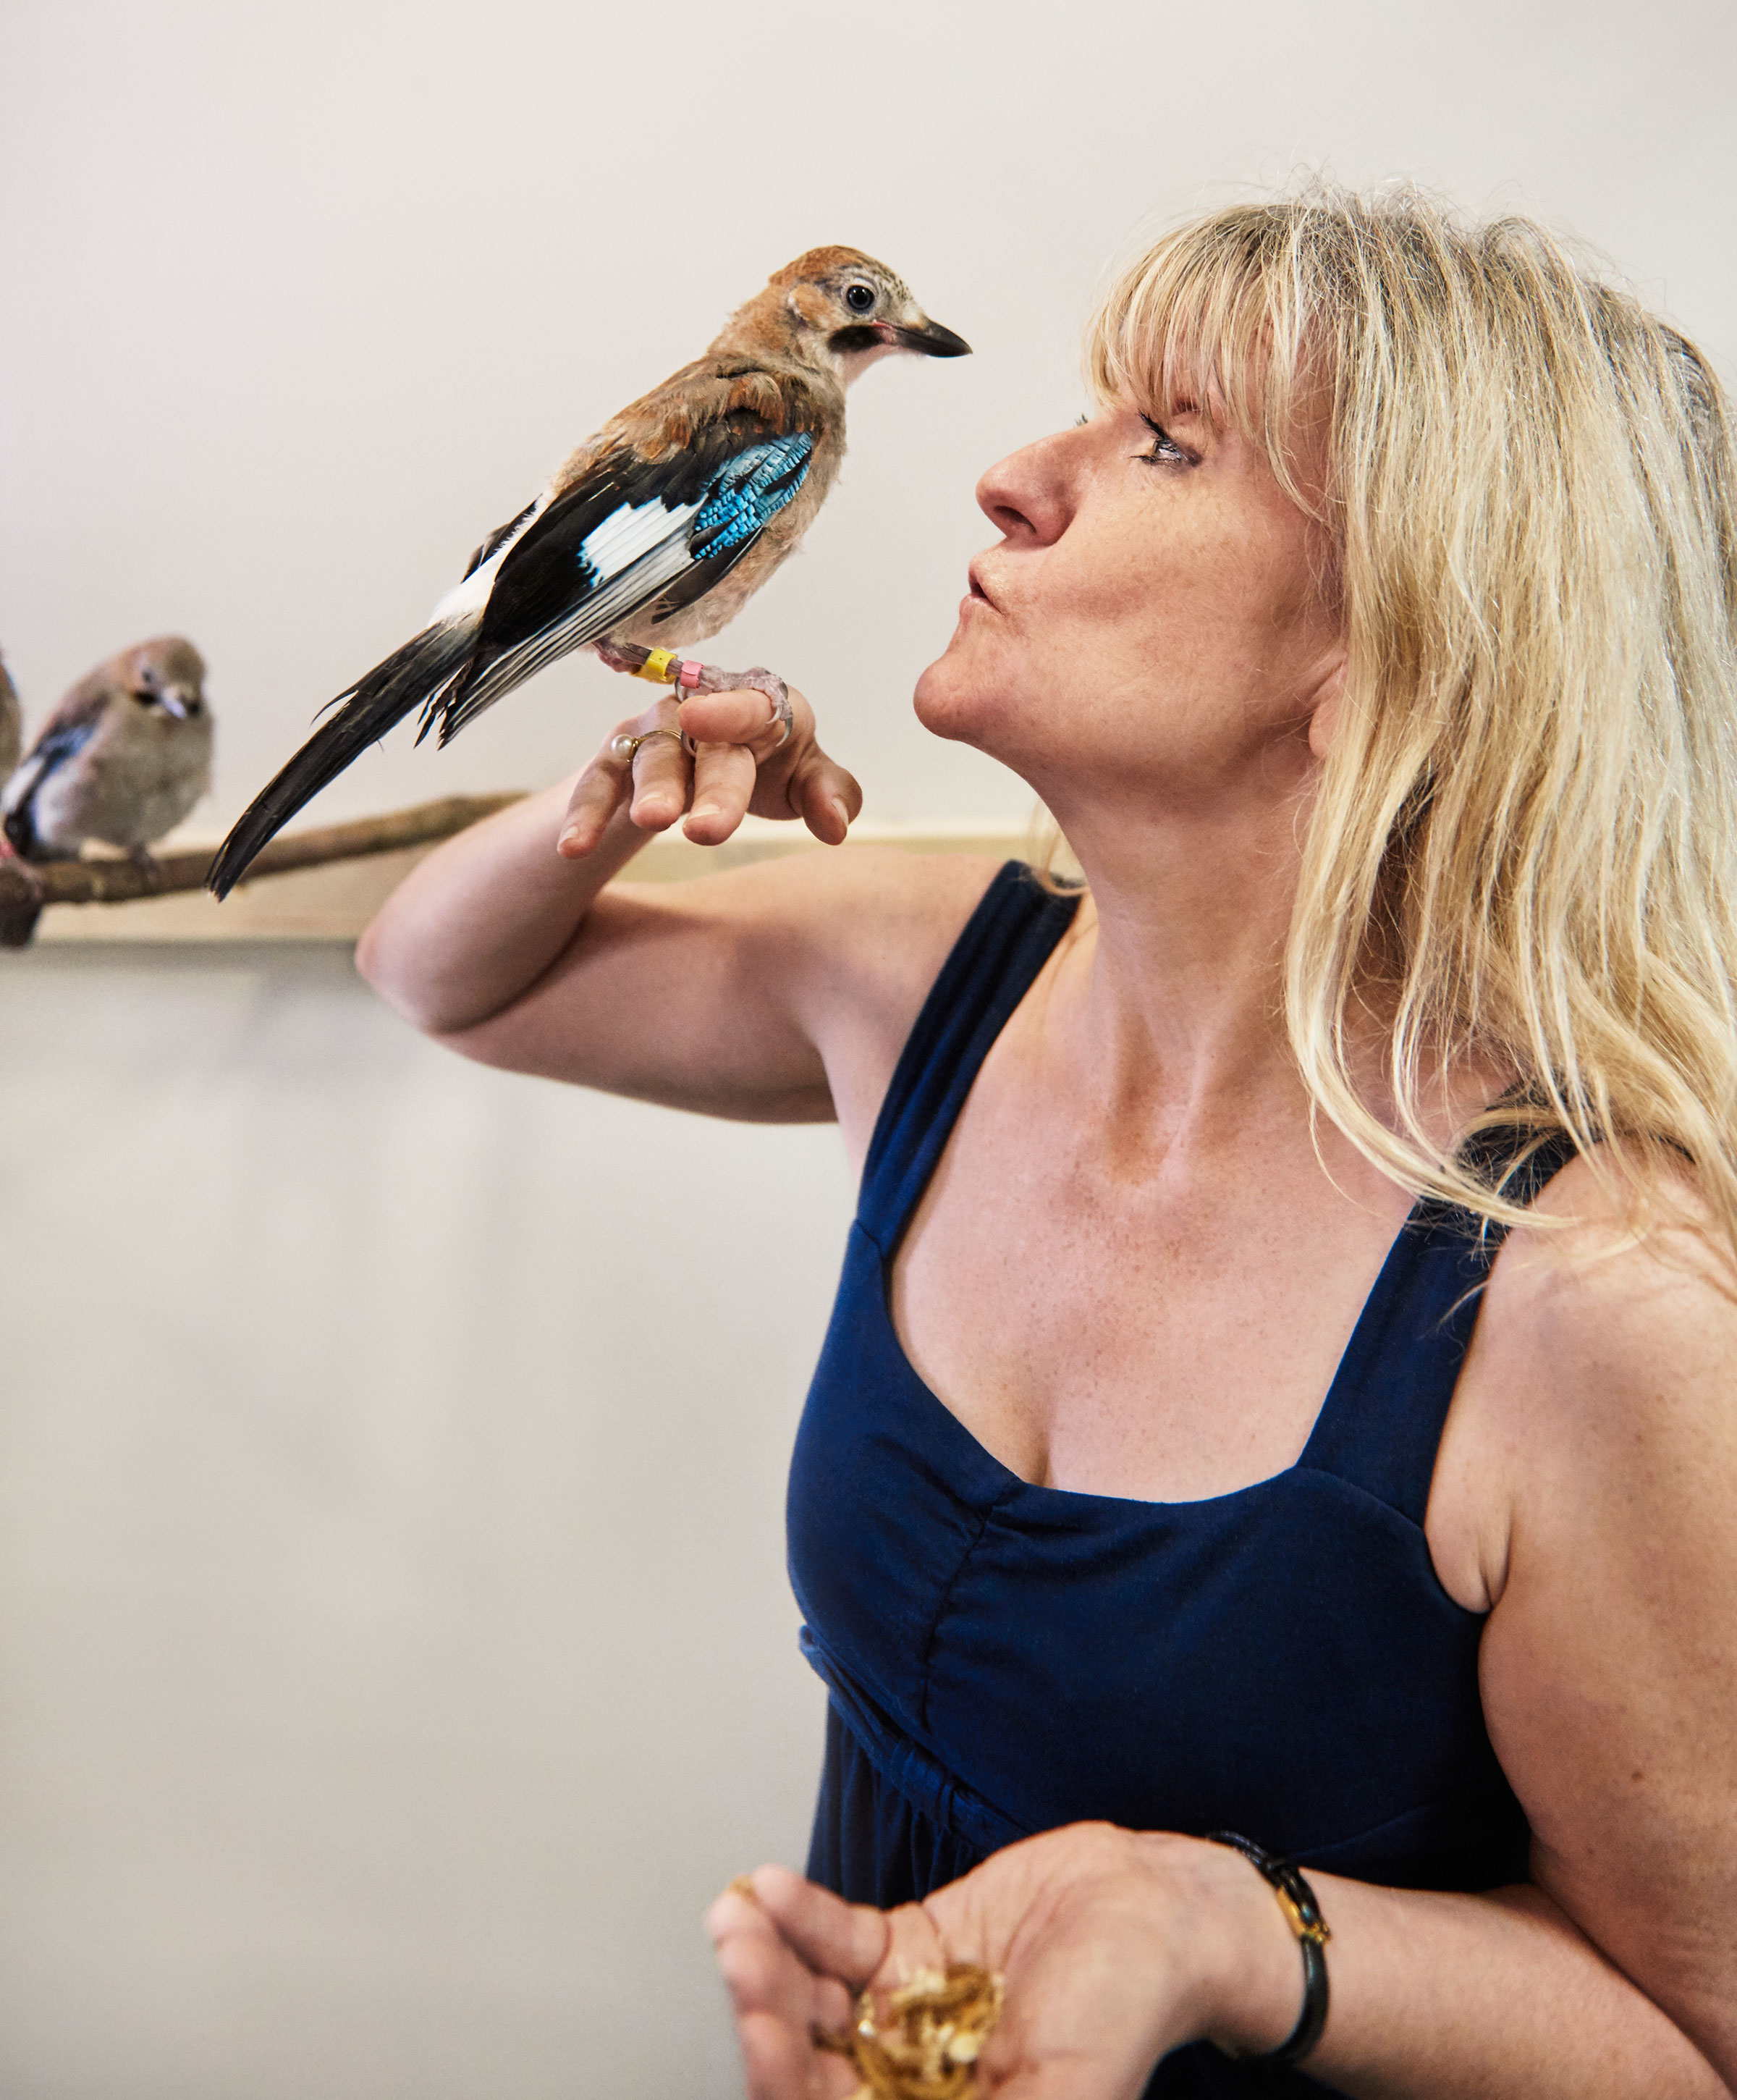 Researcher Nicky Clayton runs behavioral experiments with captive Eurasian Jays in the aviaries at Cambridge University. Her research has vastly expanded scientists' understanding of avian intelligence. Trevor Ray Hart